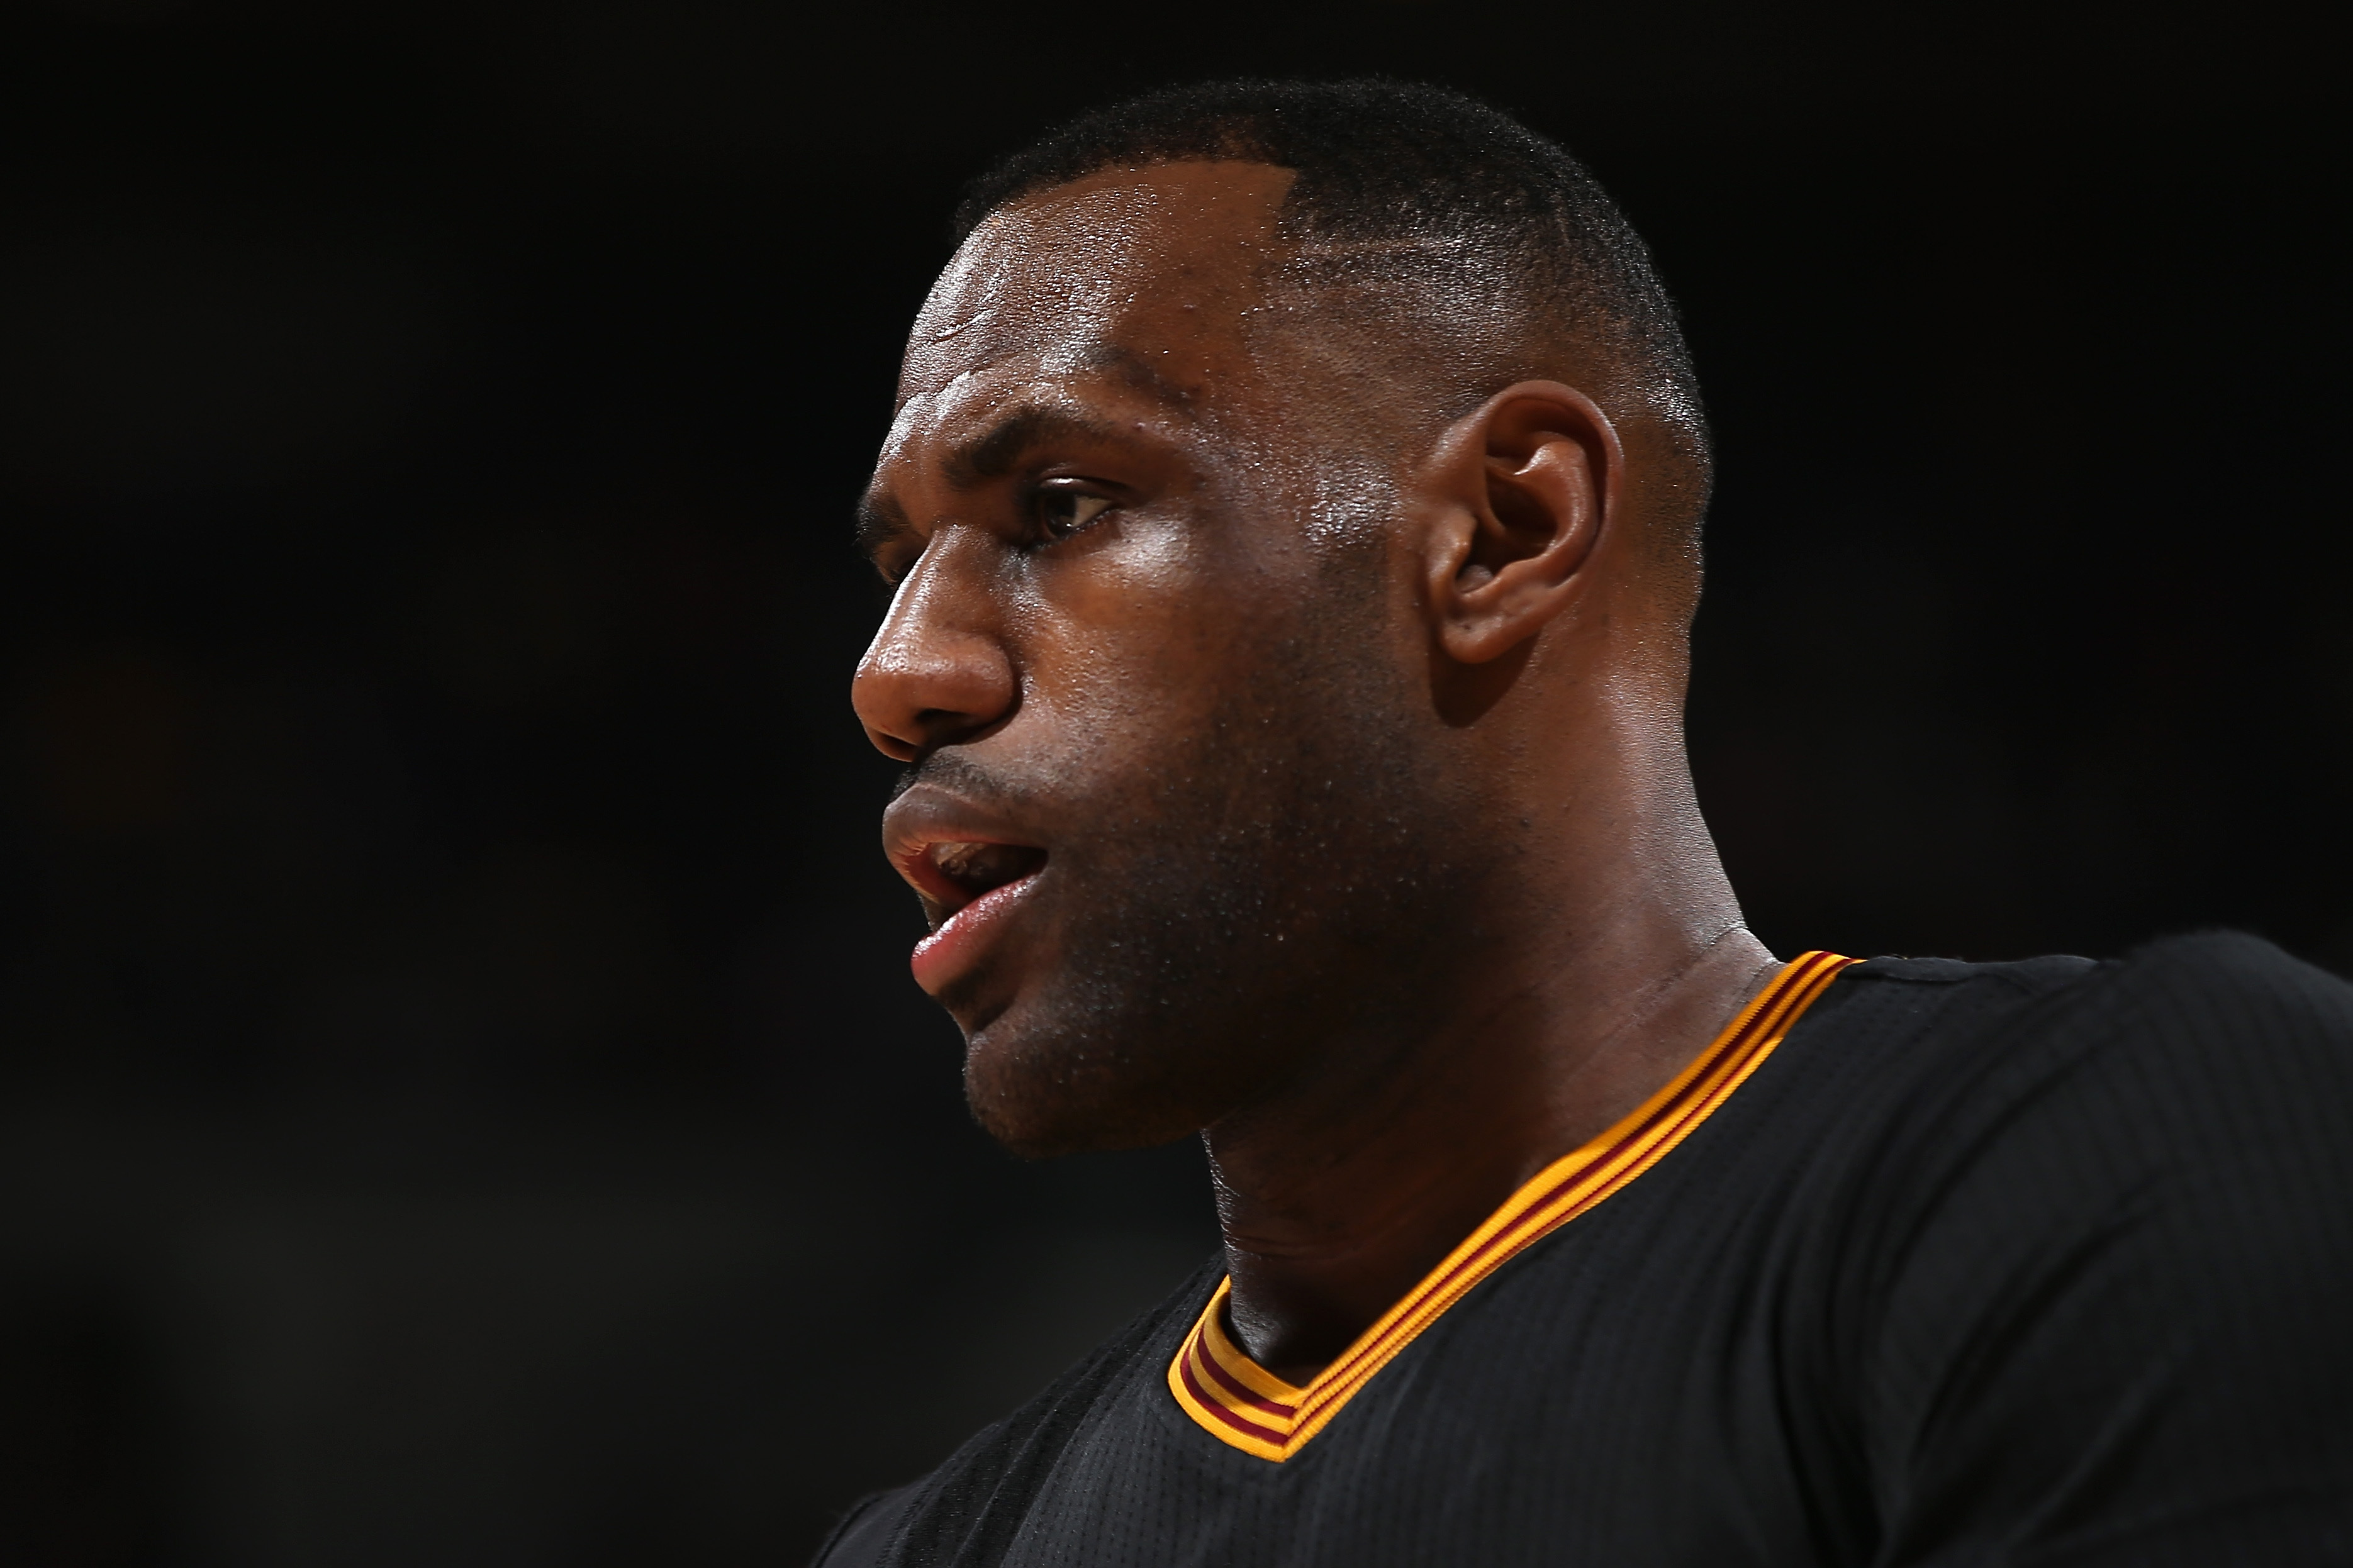 LeBron James of the Cleveland Cavaliers takes the court against the Denver Nuggets on Dec. 29, 2015 in Denver, Colorado.